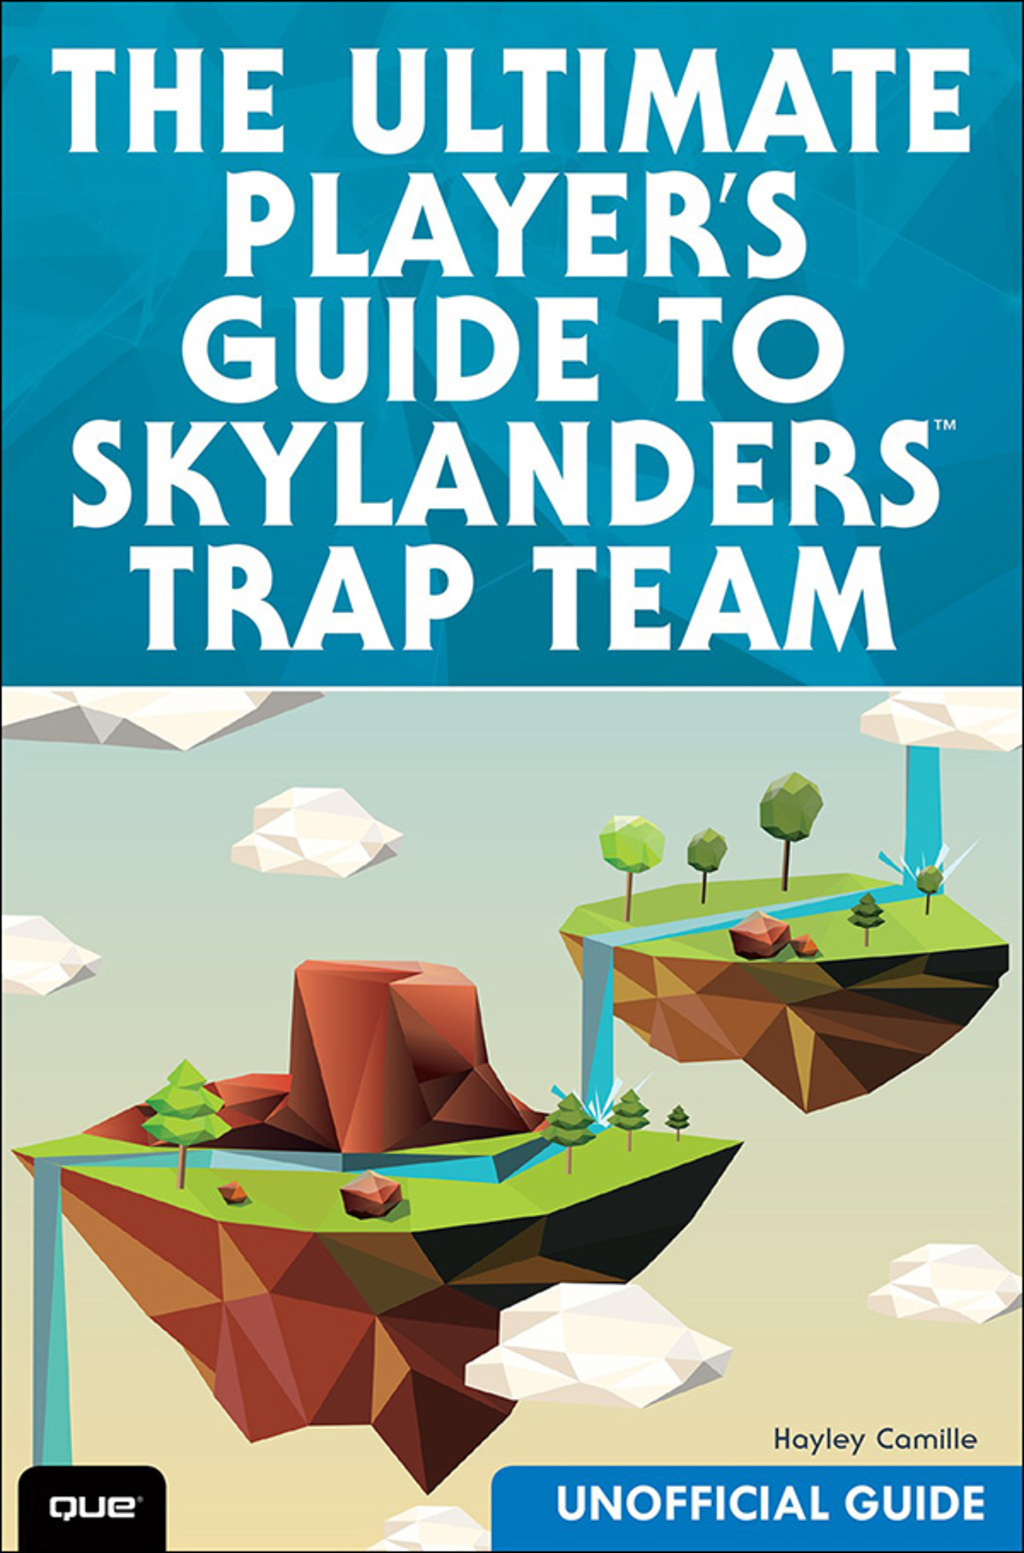 The Ultimate Player's Guide to Skylanders Trap Team (Unofficial Guide) (ebook) eBooks